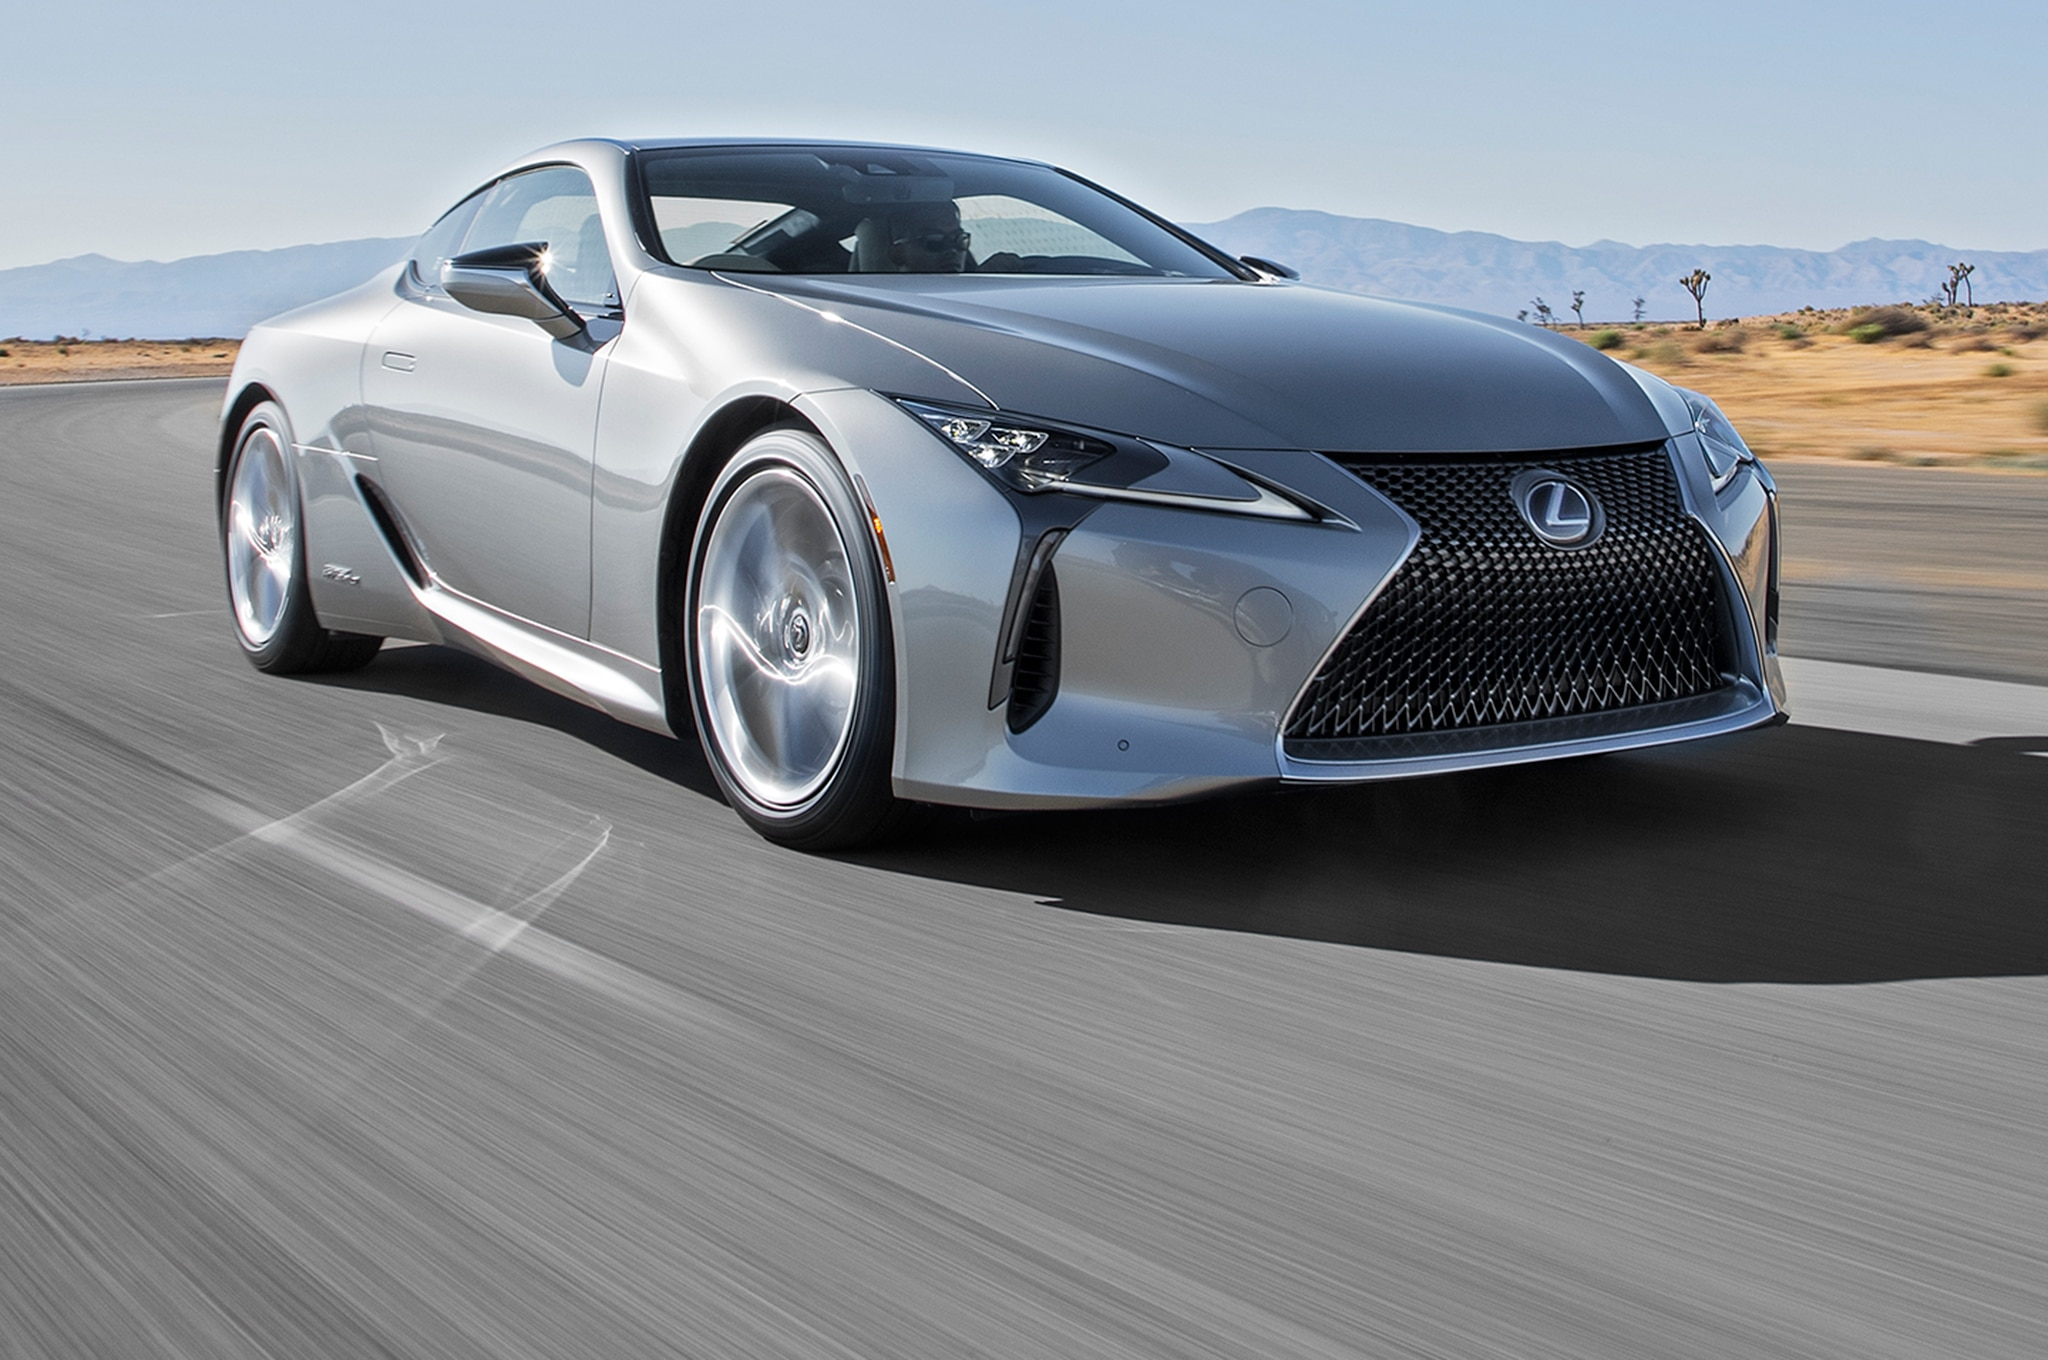 2018 Lexus LC 500h Front Three Quarter In Motion 00